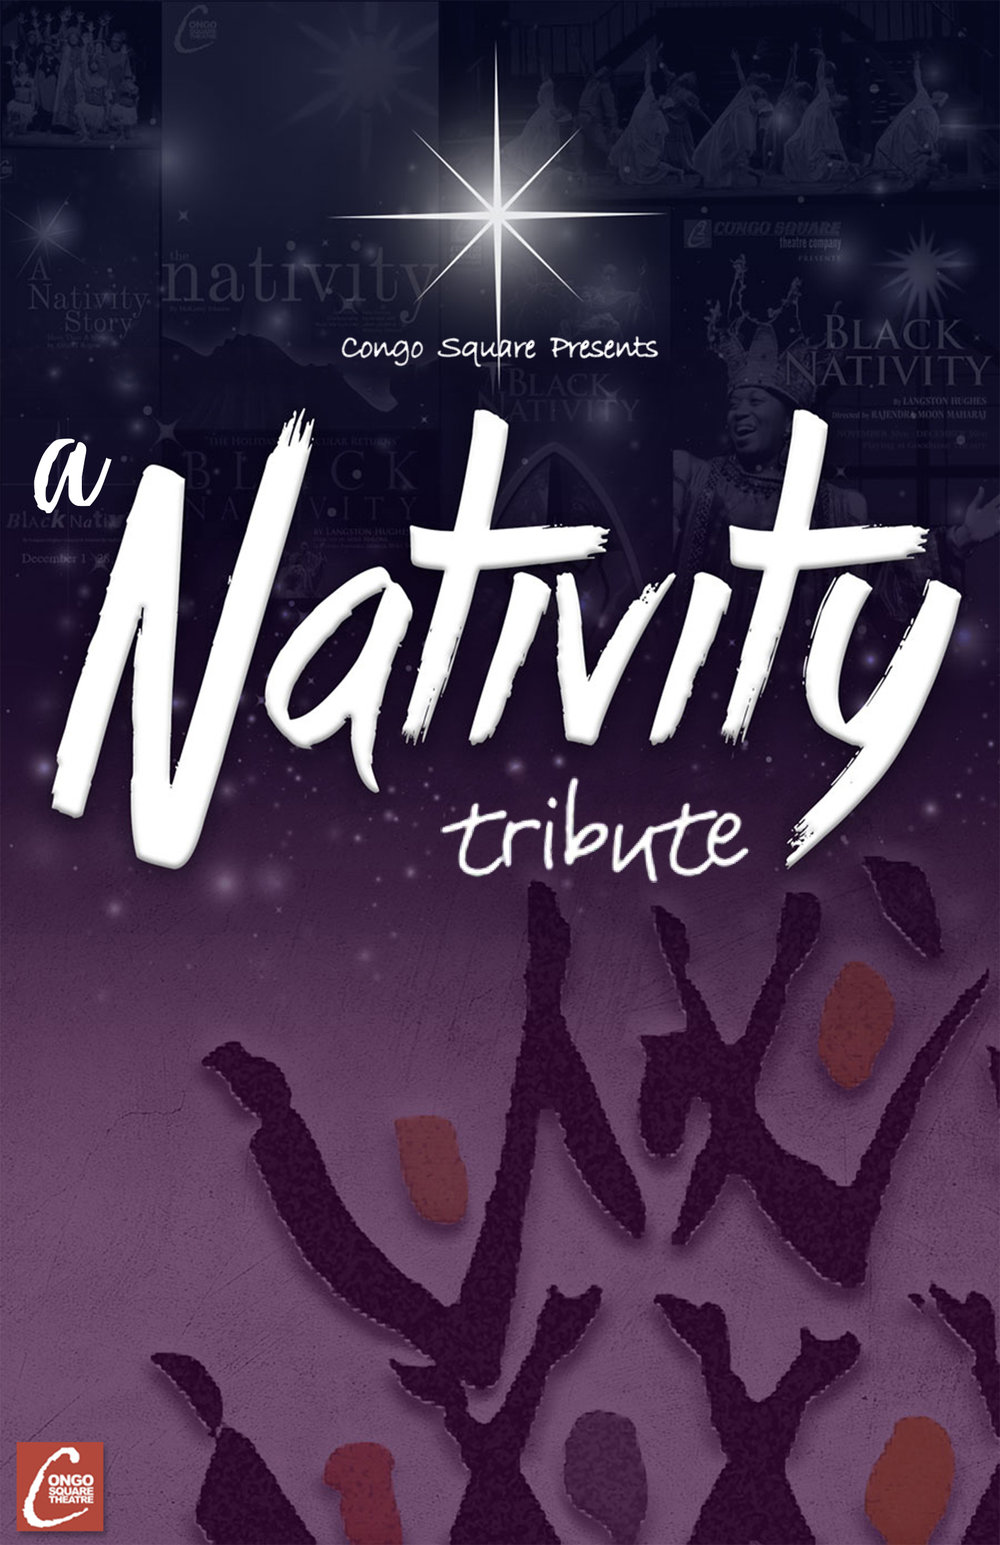 NATIVITY 2017 PROGRAM FRONT.jpg